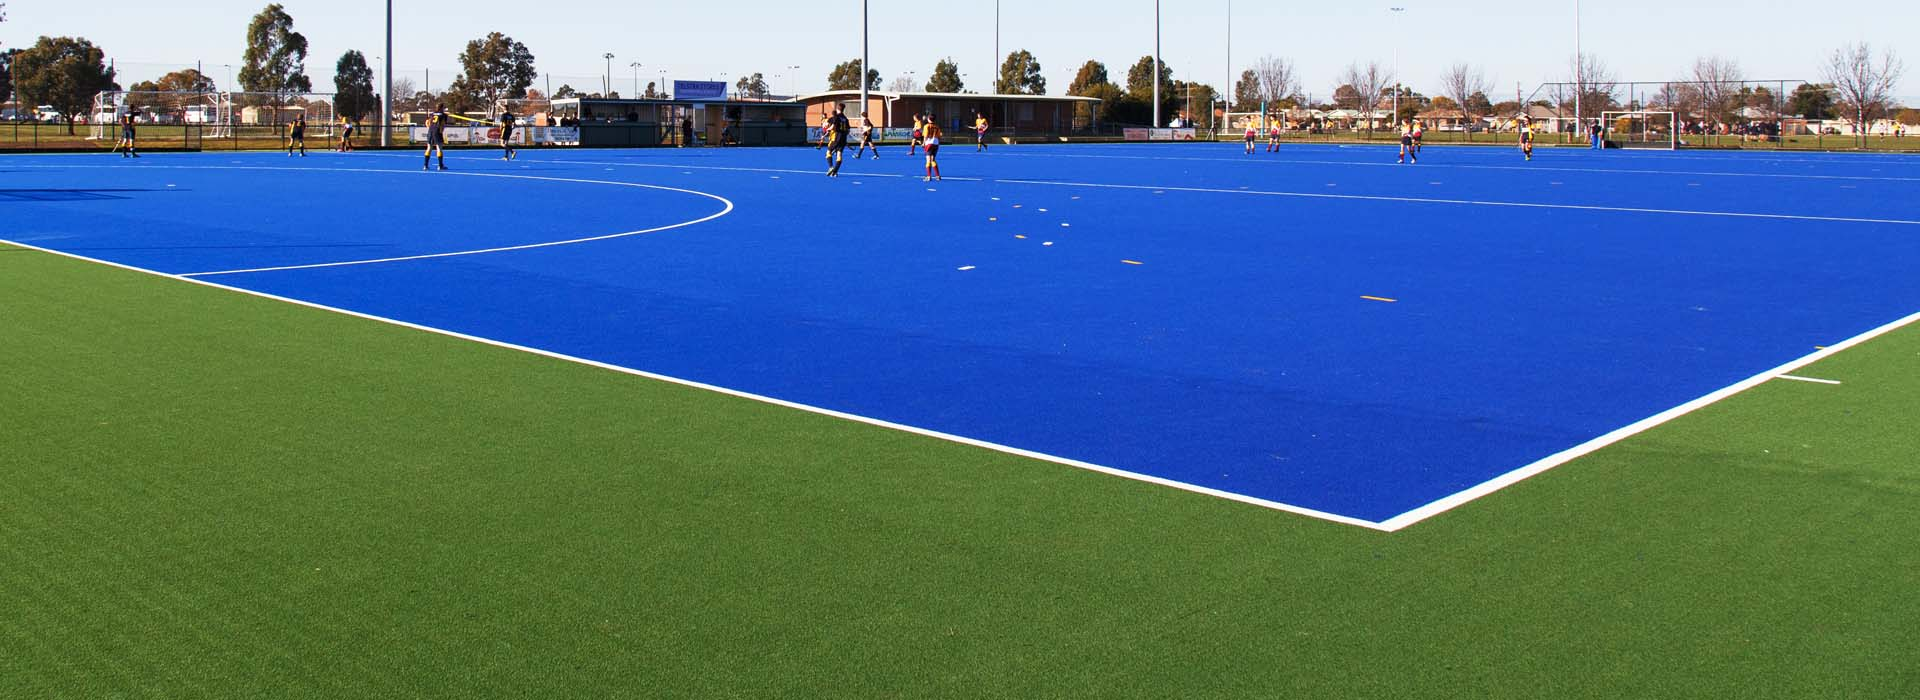 ccgrass high performance hockey artificial grass field South-Africa